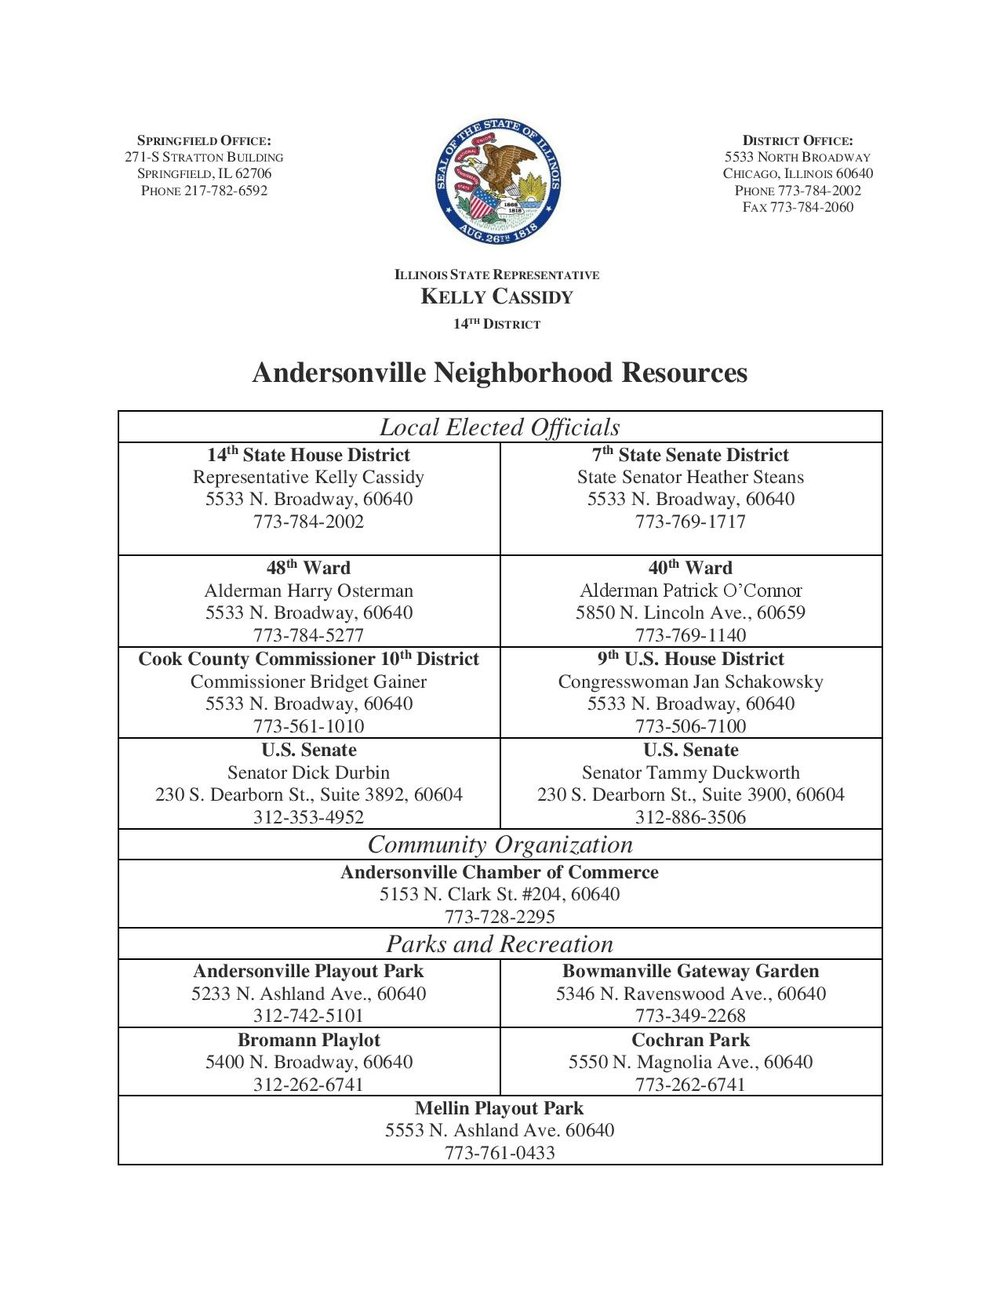 Andersonville Neighborhood Resources page 1.jpg